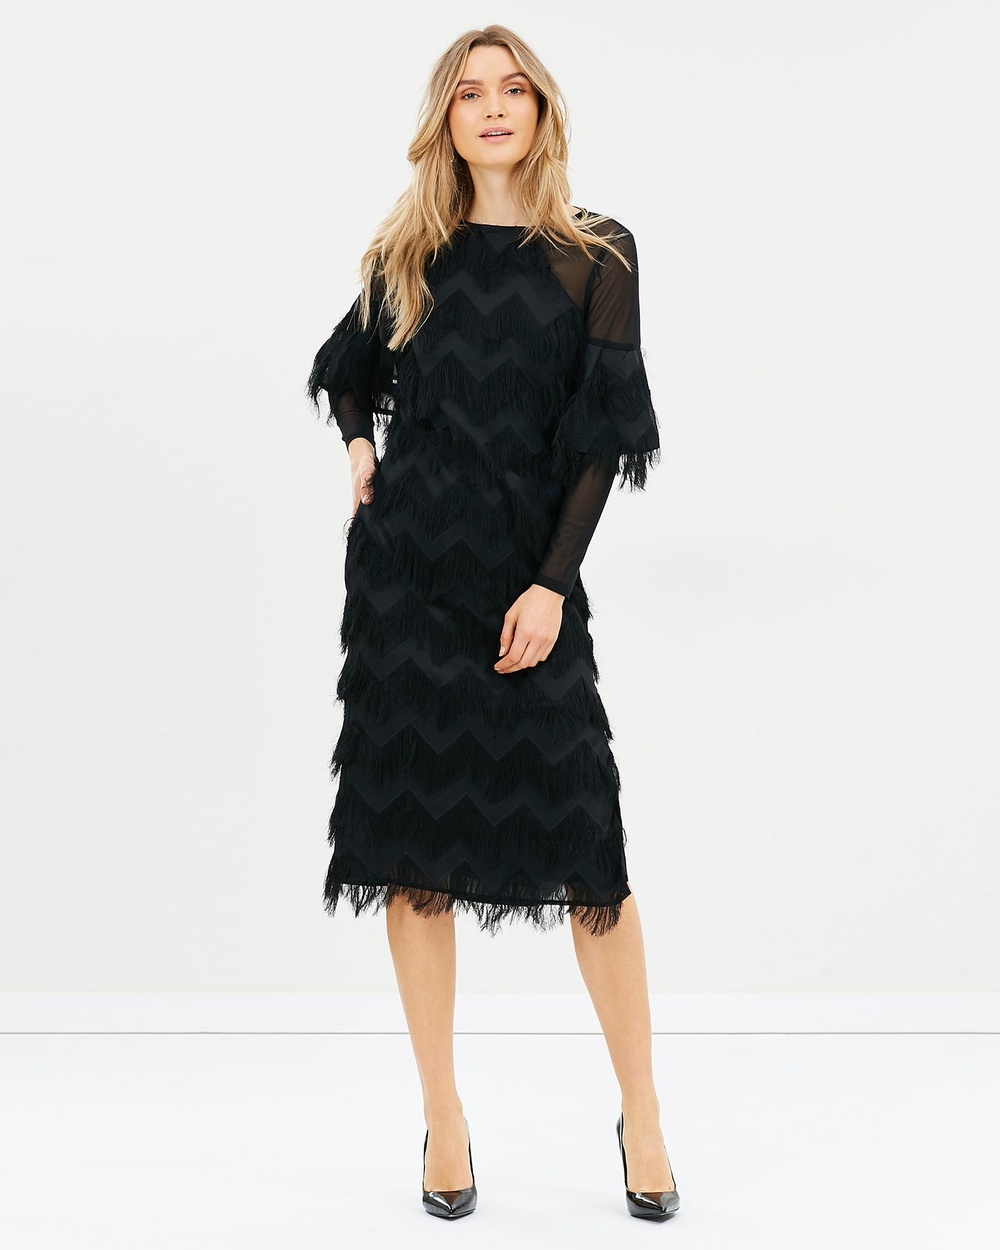 Elliatt Hilton Dress Dresses Black Hilton Dress